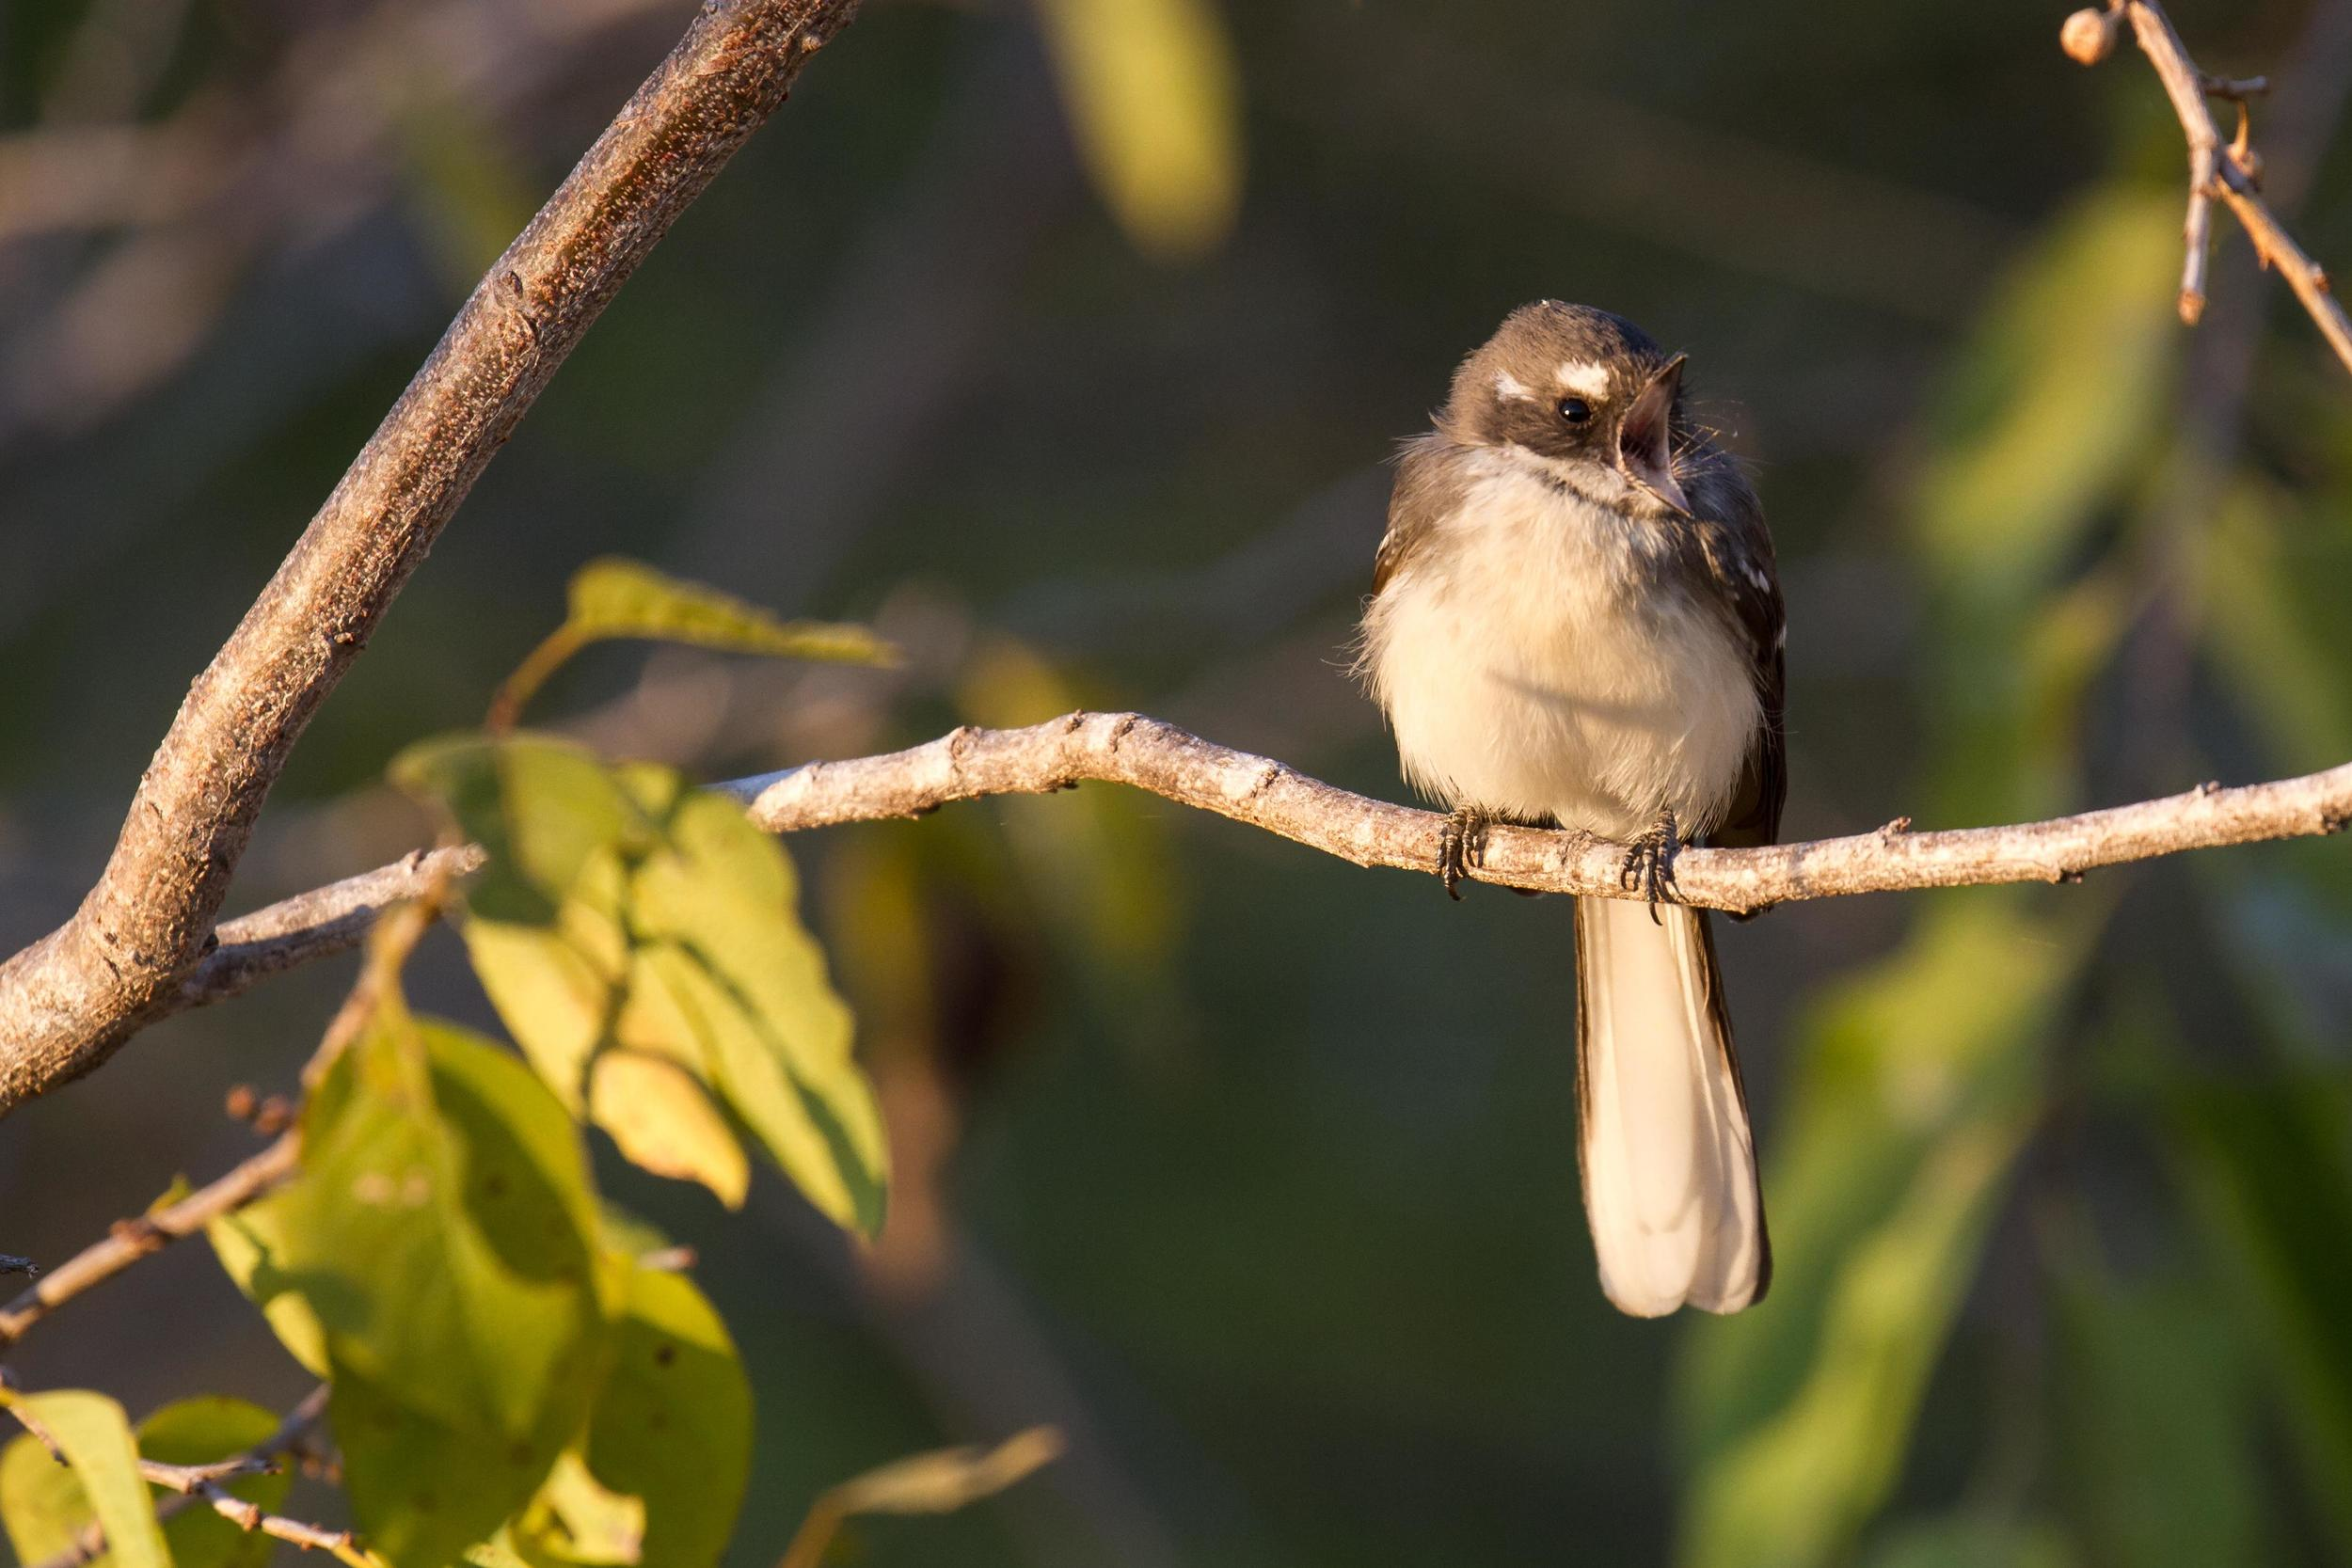 The  albicauda  Grey Fantail ('White-tailed Fantail') looks similar to our local Mangrove Grey Fantails, and could usually be found in their company, rather than that of the other Grey Fantails. Photo: Ric Else